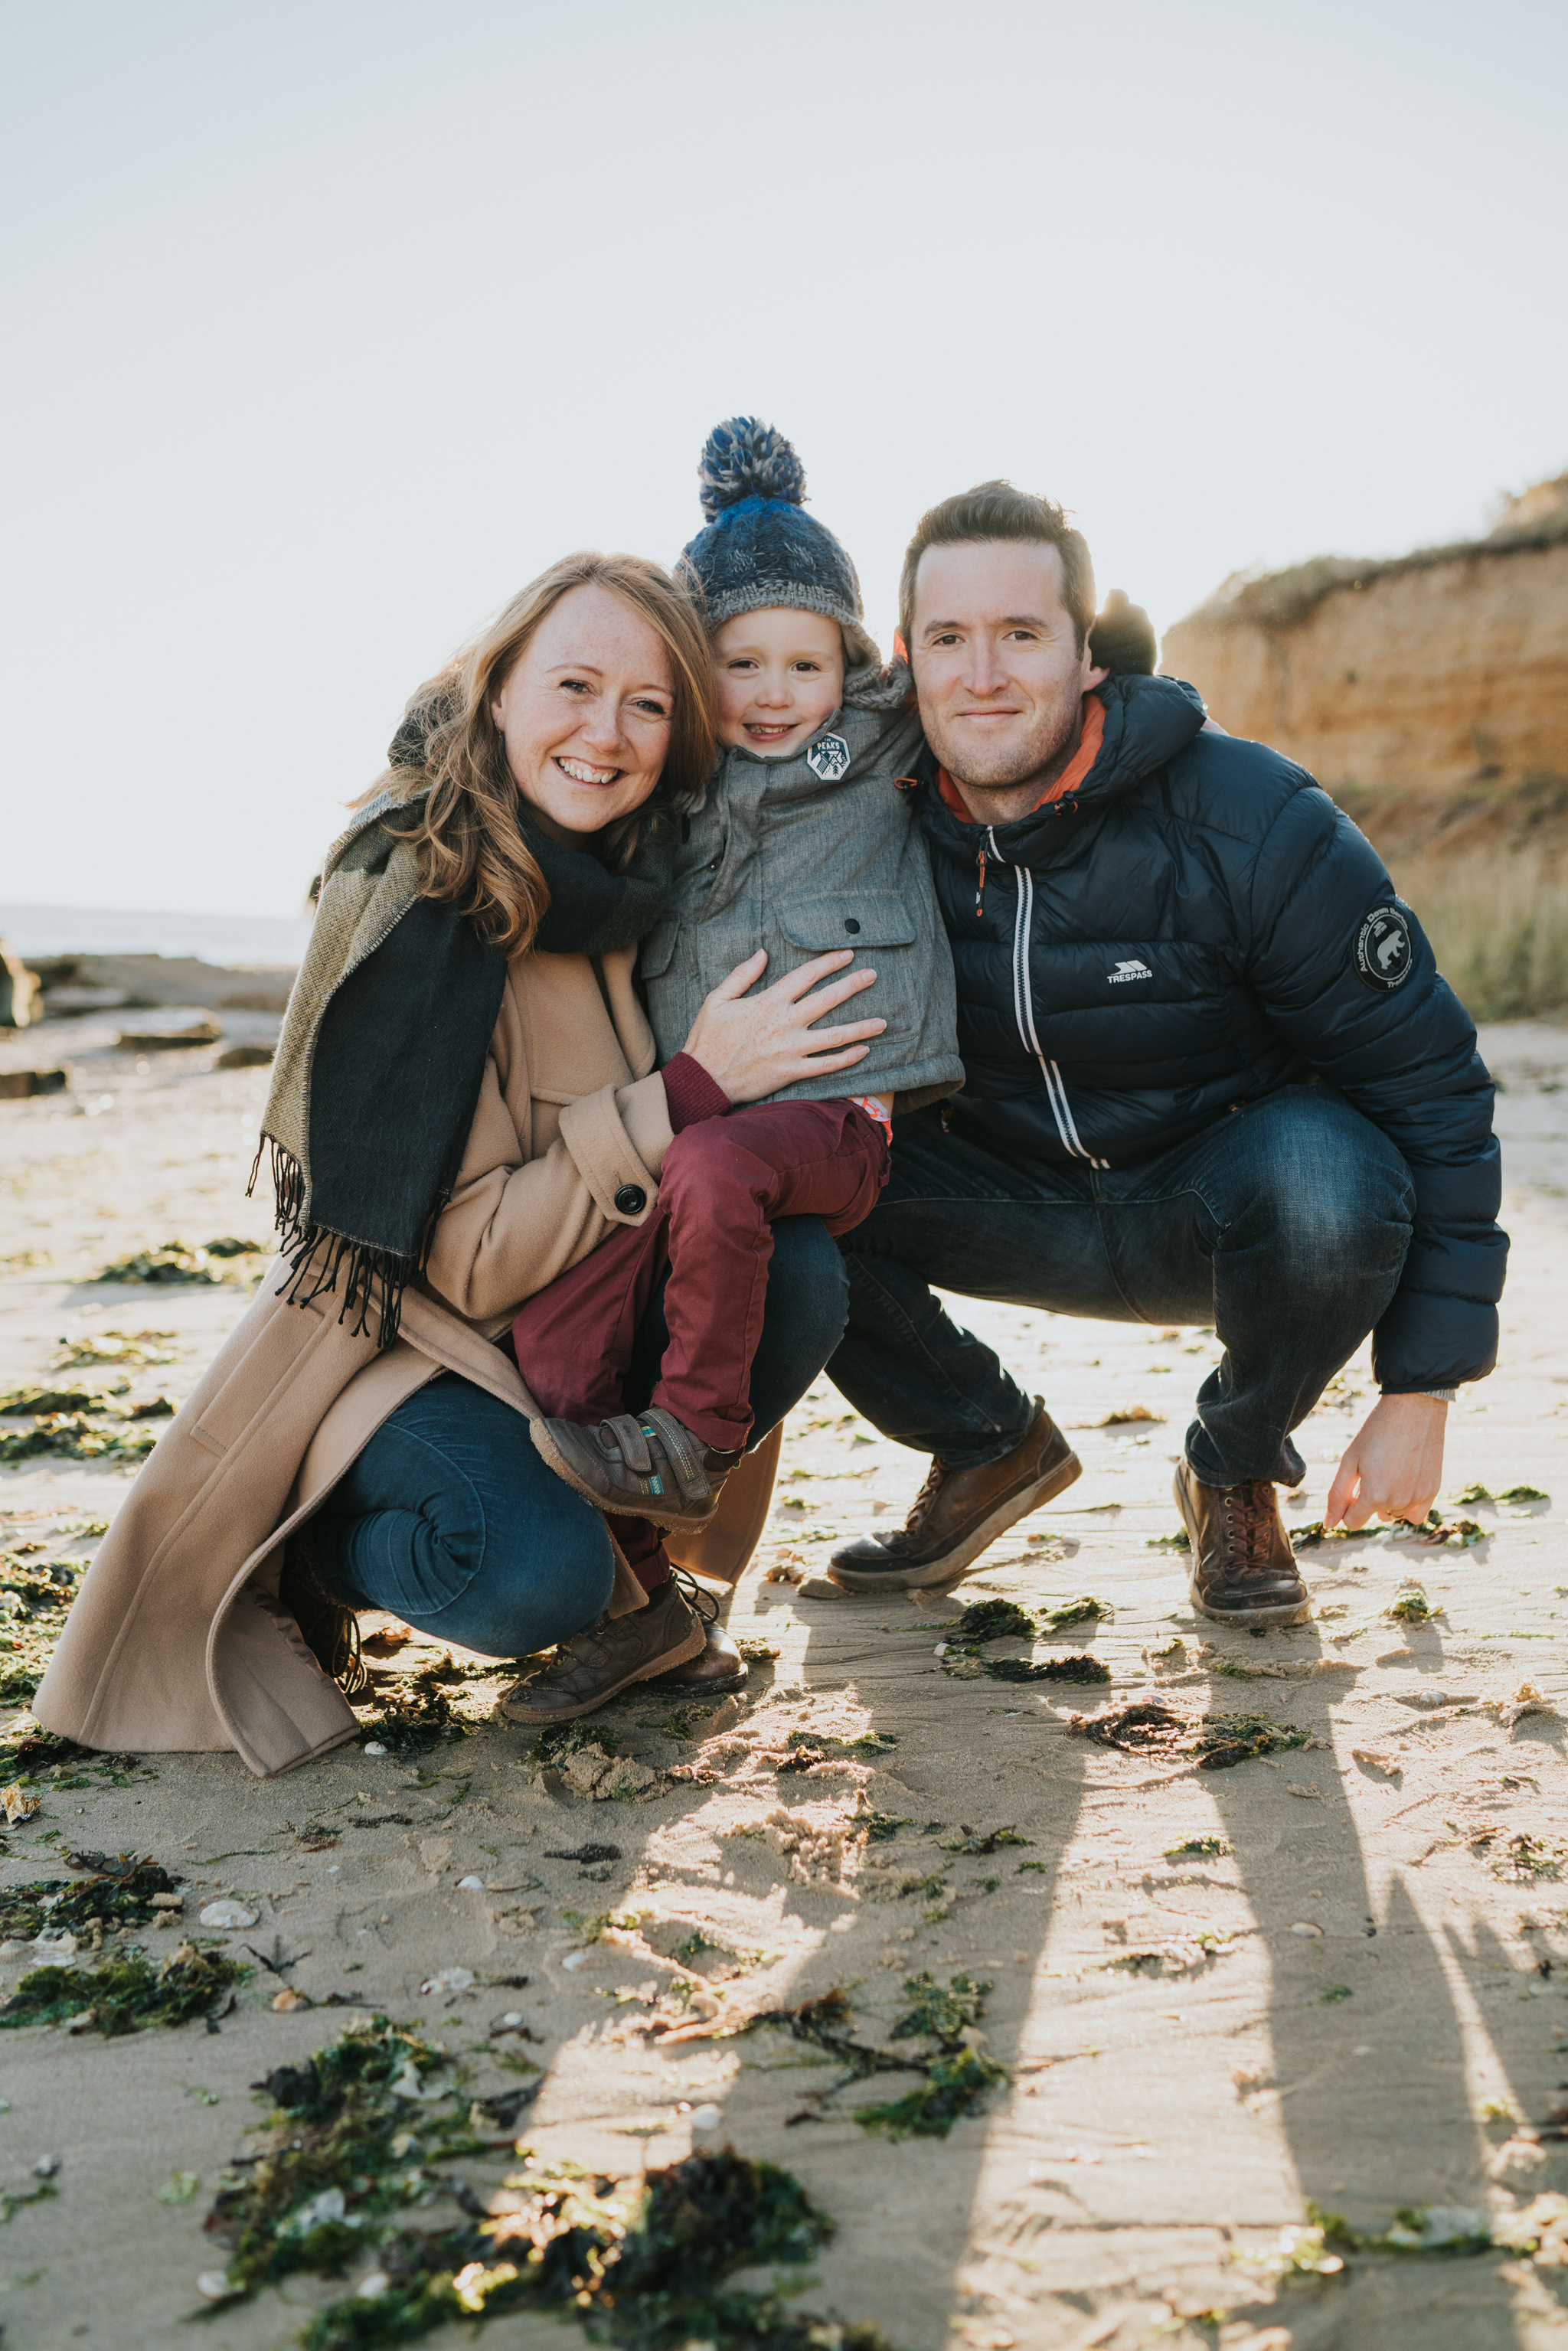 bushell-family-session-beach-cudmore-grove-lifestyle-grace-elizabeth-colchester-essex-alternative-relaxed-wedding-family-photography-devon-suffolk-norfolk-essex (14 of 34).jpg